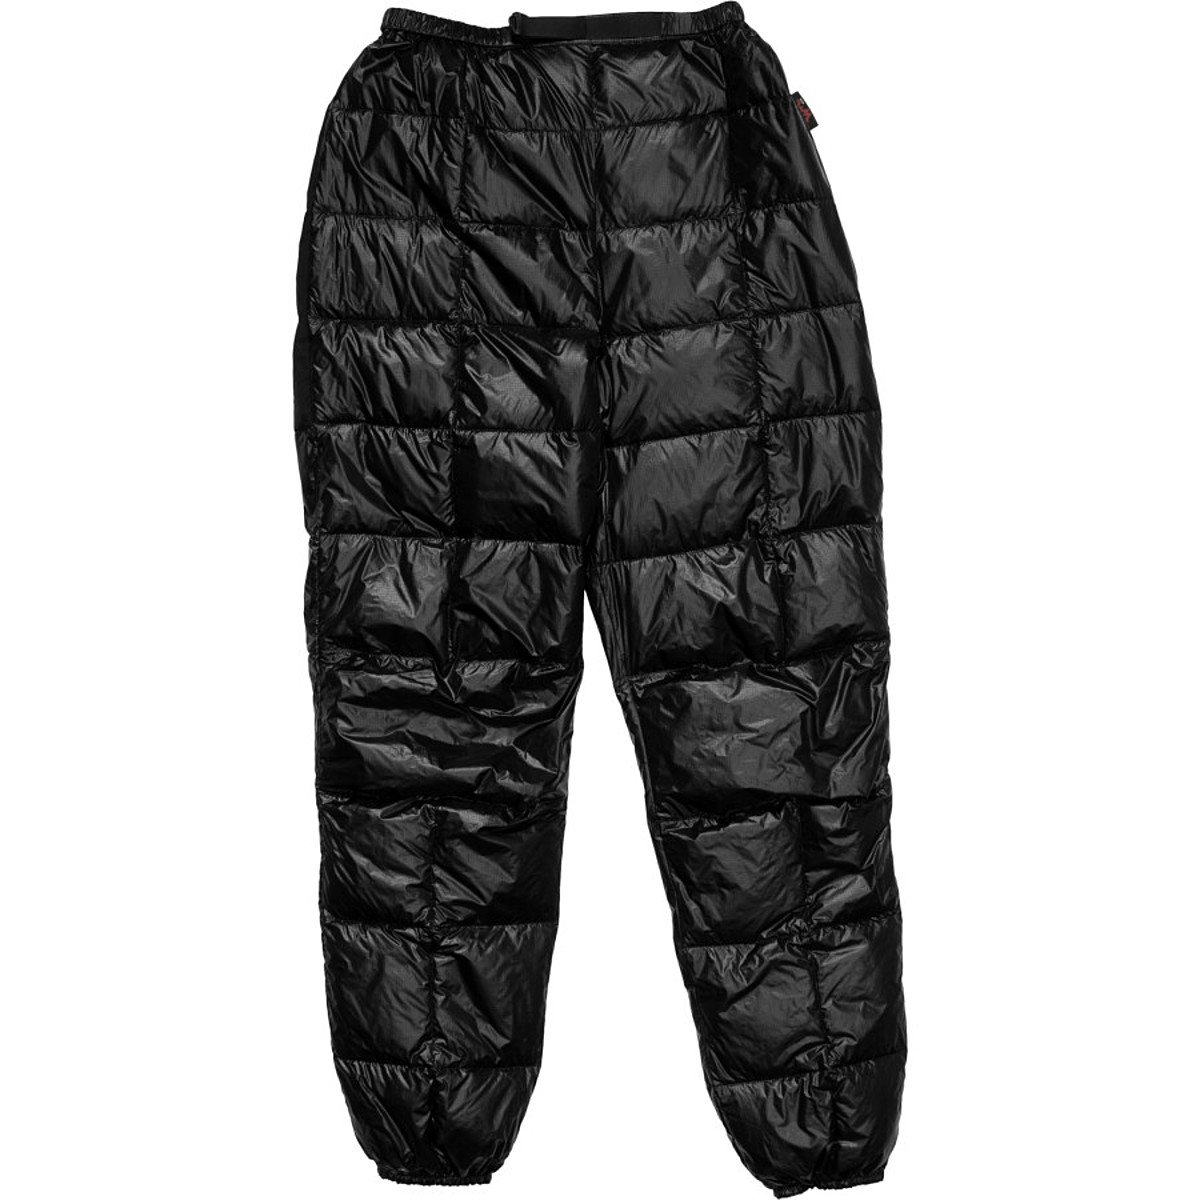 Western Mountaineering Flash Down Pant - Men's Black, L by Western Mountaineering